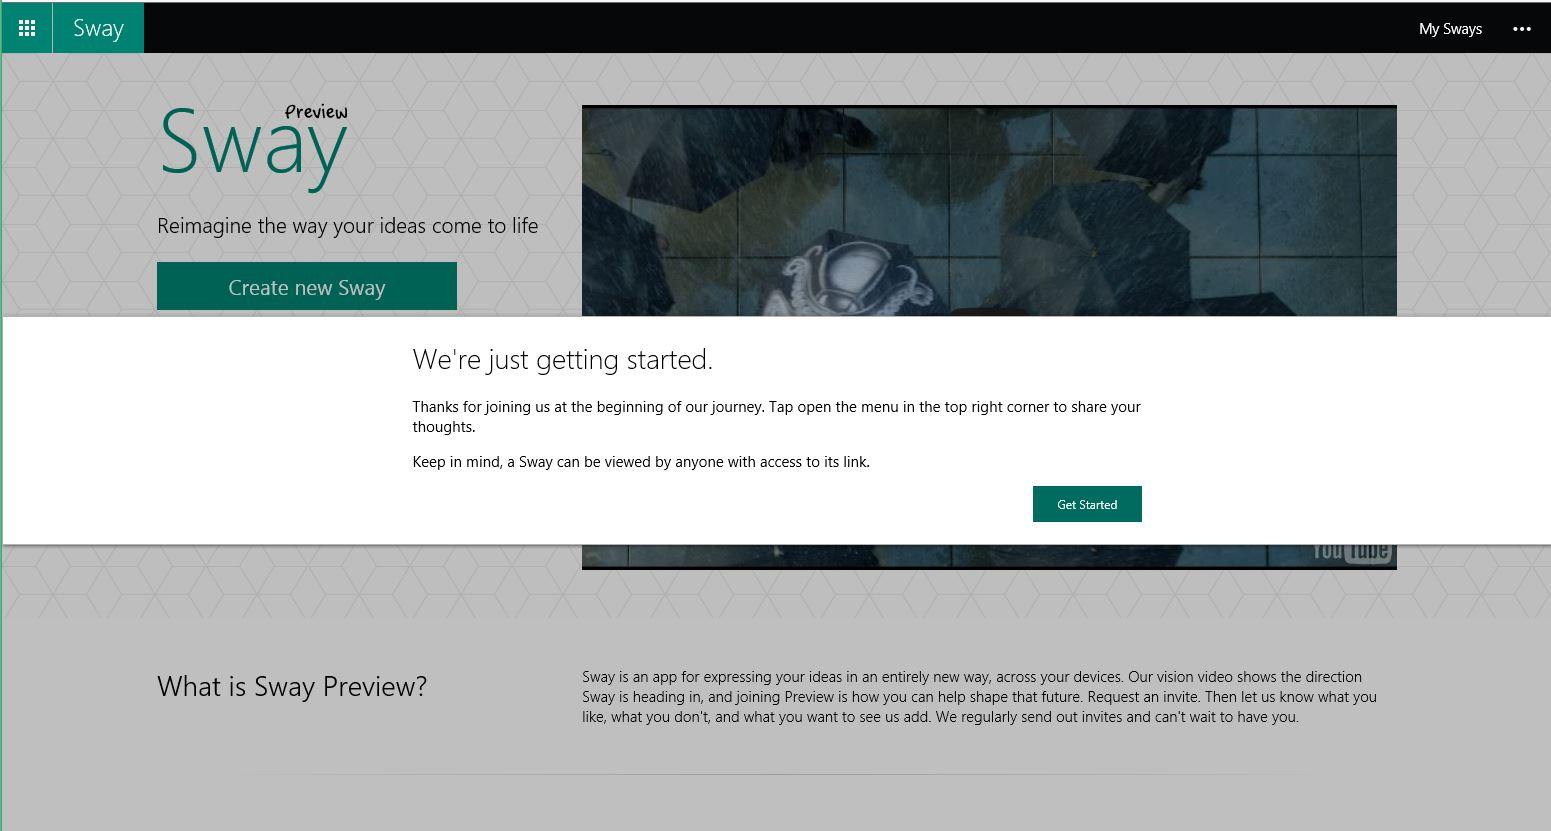 Cgnet Services Sway Preview: How To Make A Microsoft Sway Presentation  Microsoft Sway Cgnet Services